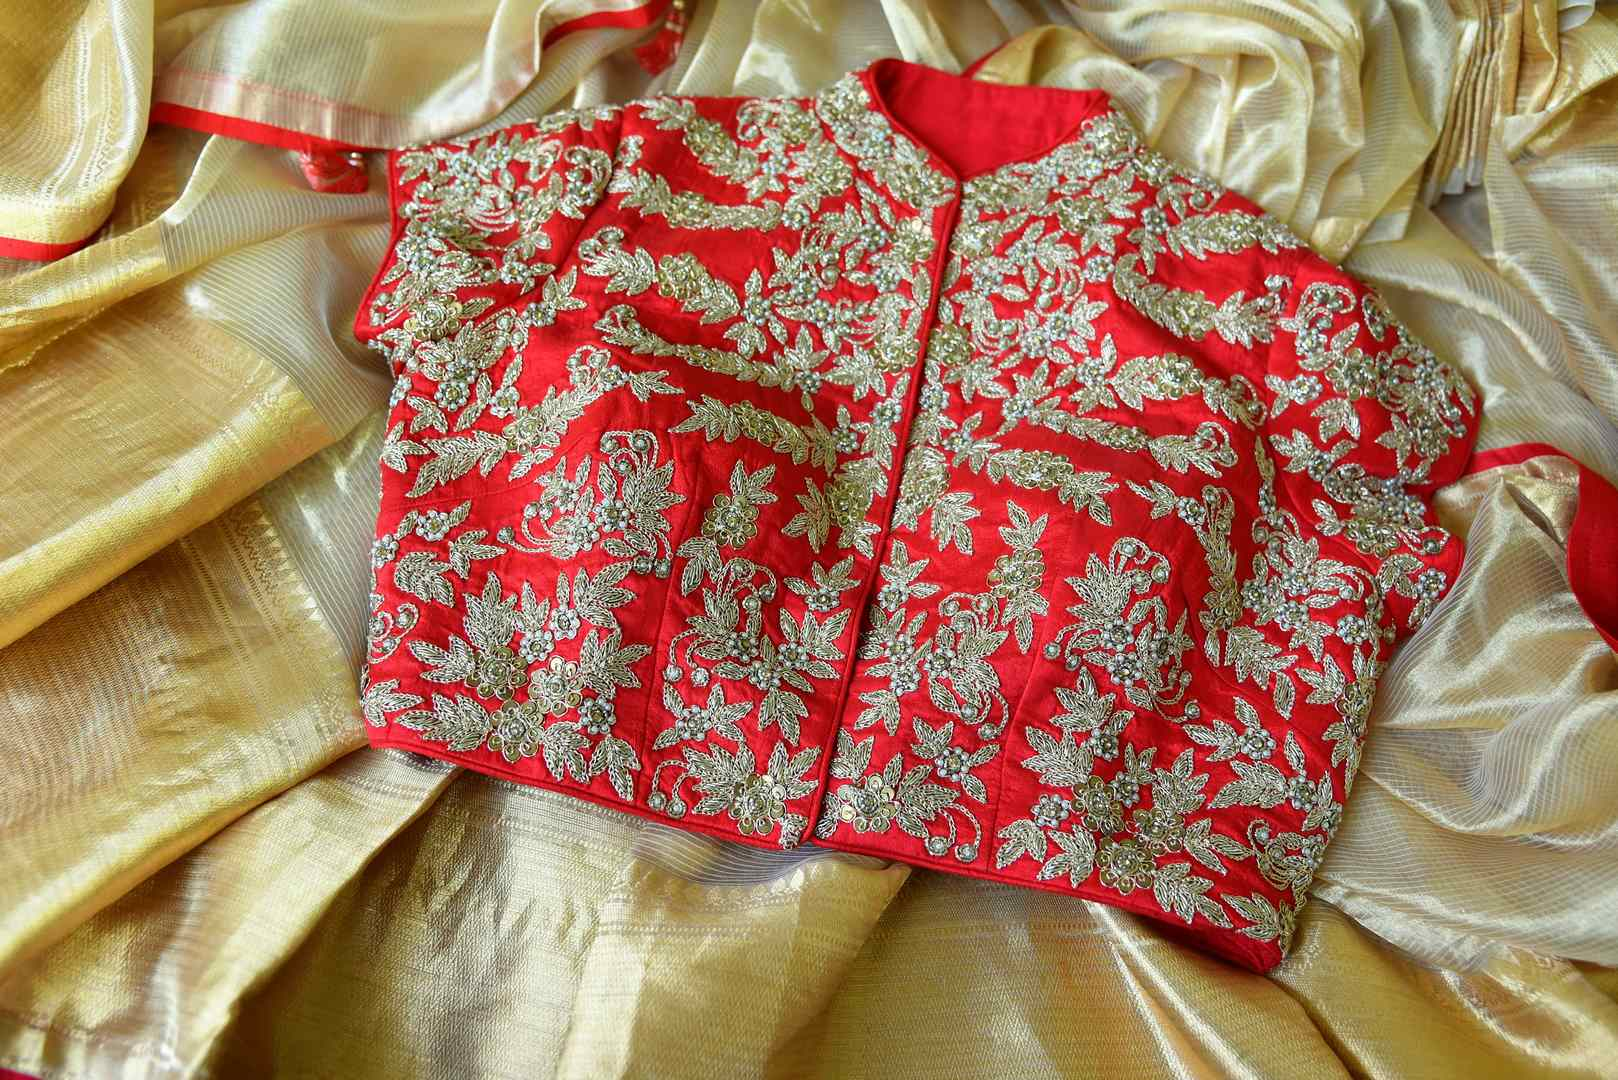 Buy cream tissue saree online in USA with red embroidered saree blouse. Let your ethnic look shine with beautiful Indian designer sarees from Pure Elegance Indian fashion store in USA. You can also browse through our website and shop online.-details